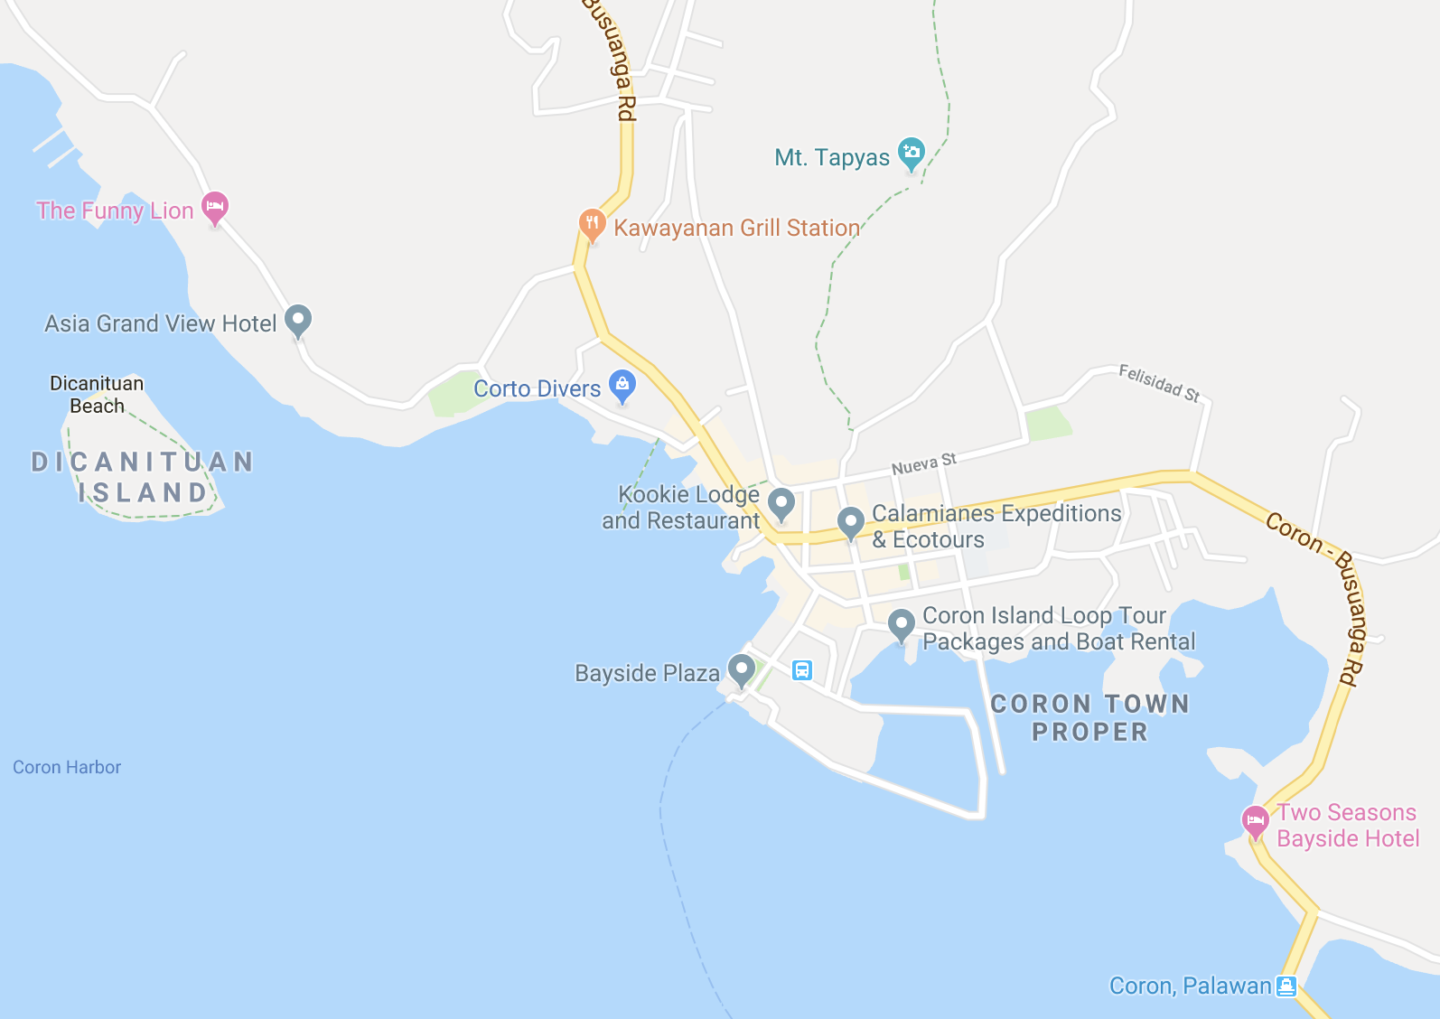 map of coron town proper